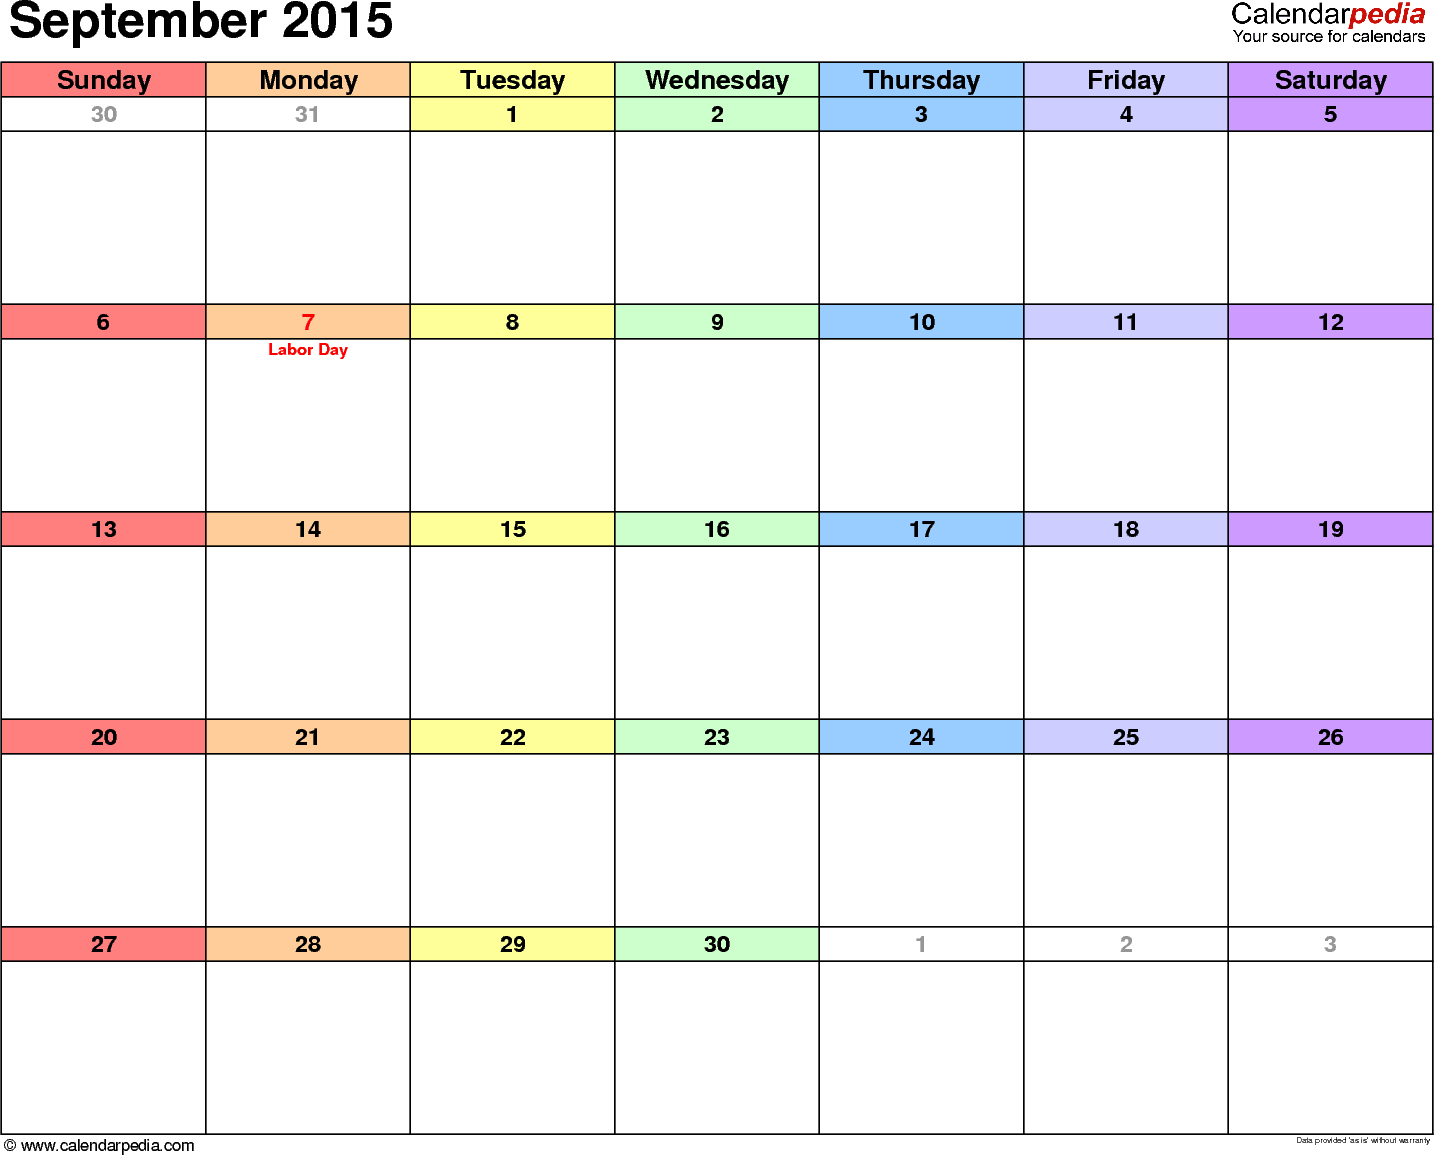 September 2015 calendar printable template